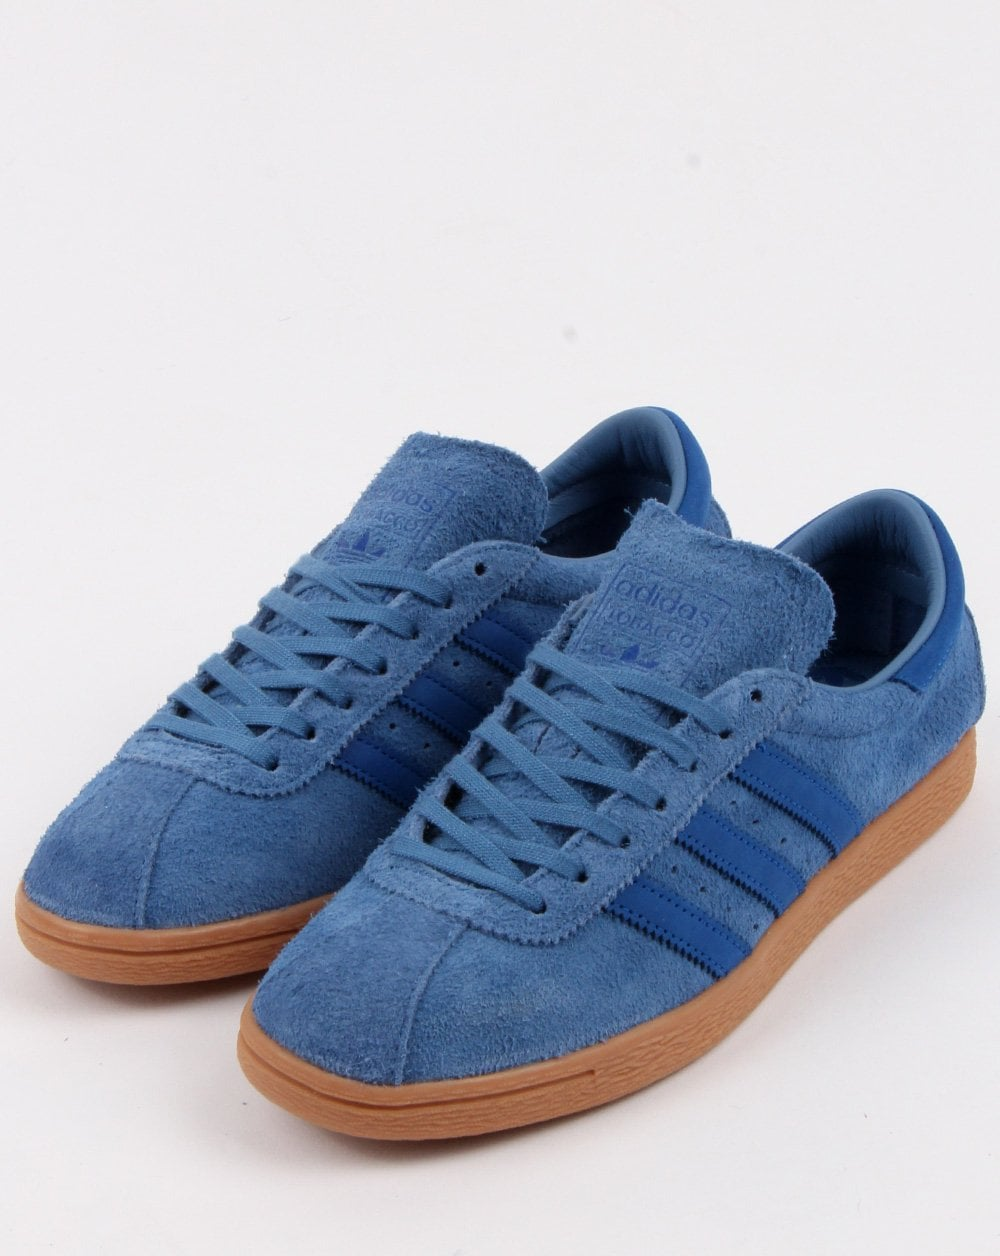 Movement horizon internal  Adidas, Tobacco Trainers, Trace Royal/collegiate Royal | 80s casuals